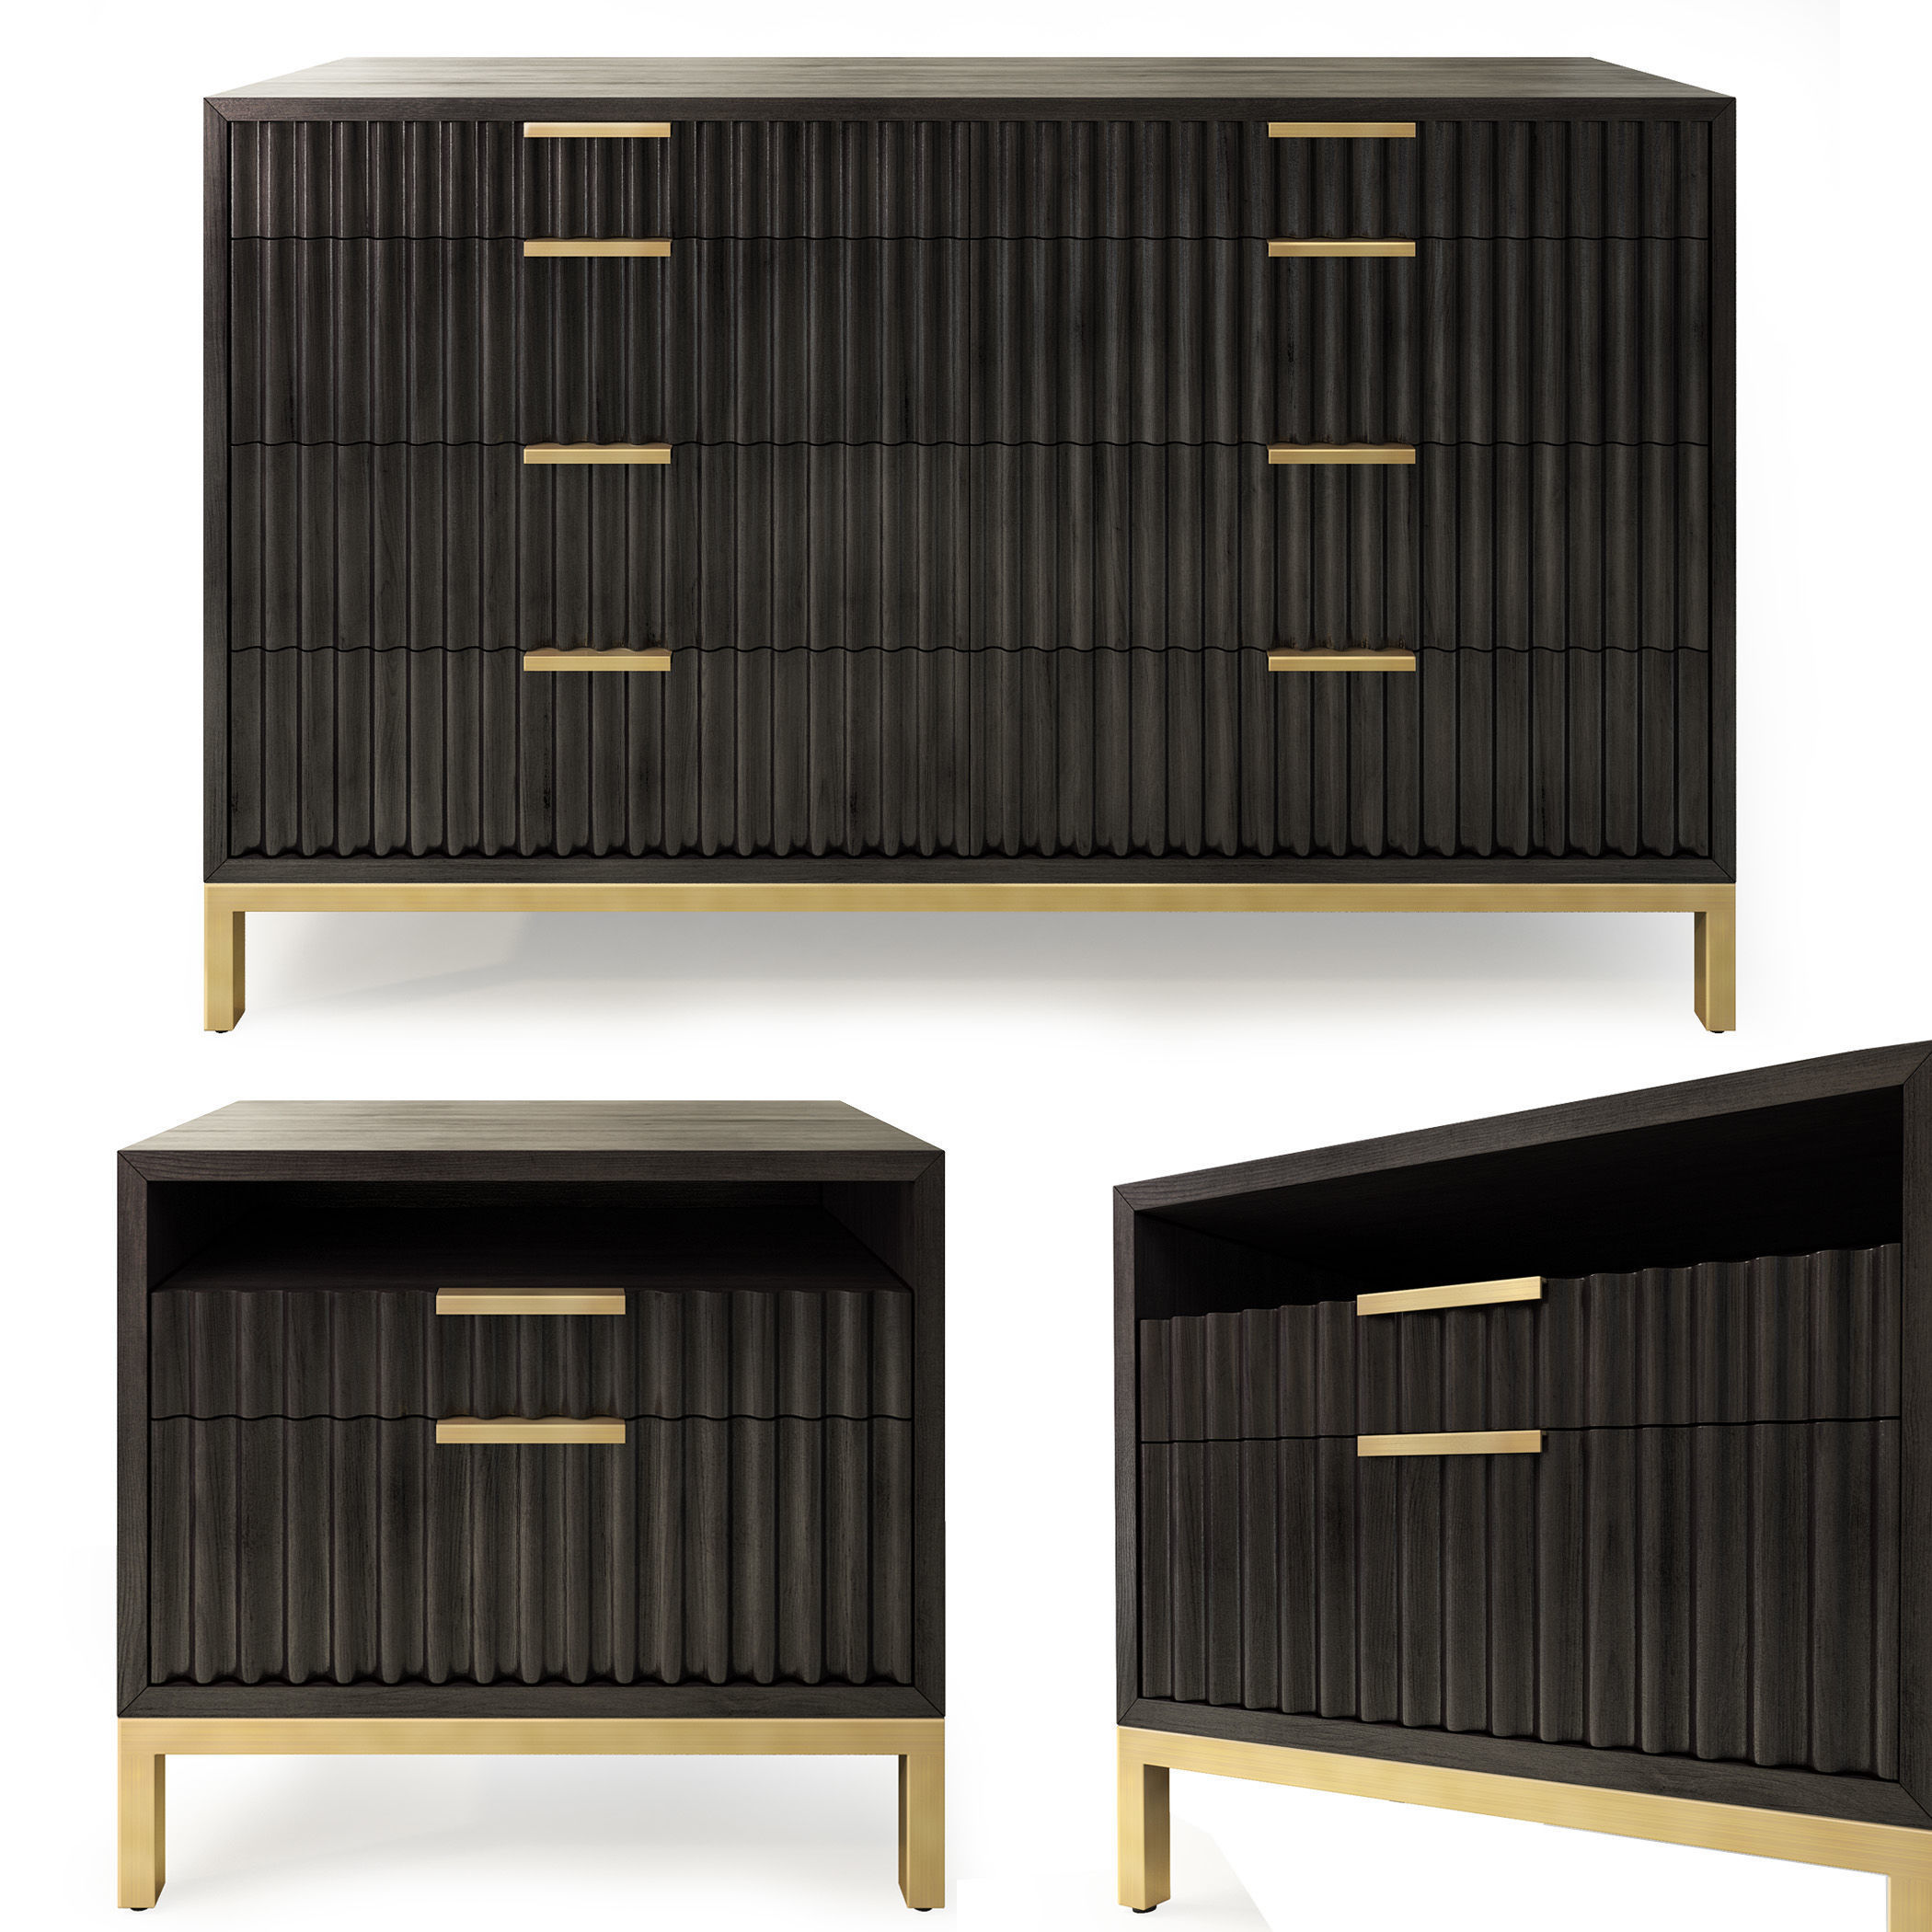 Dresser nightstand by Joss and Main Holford